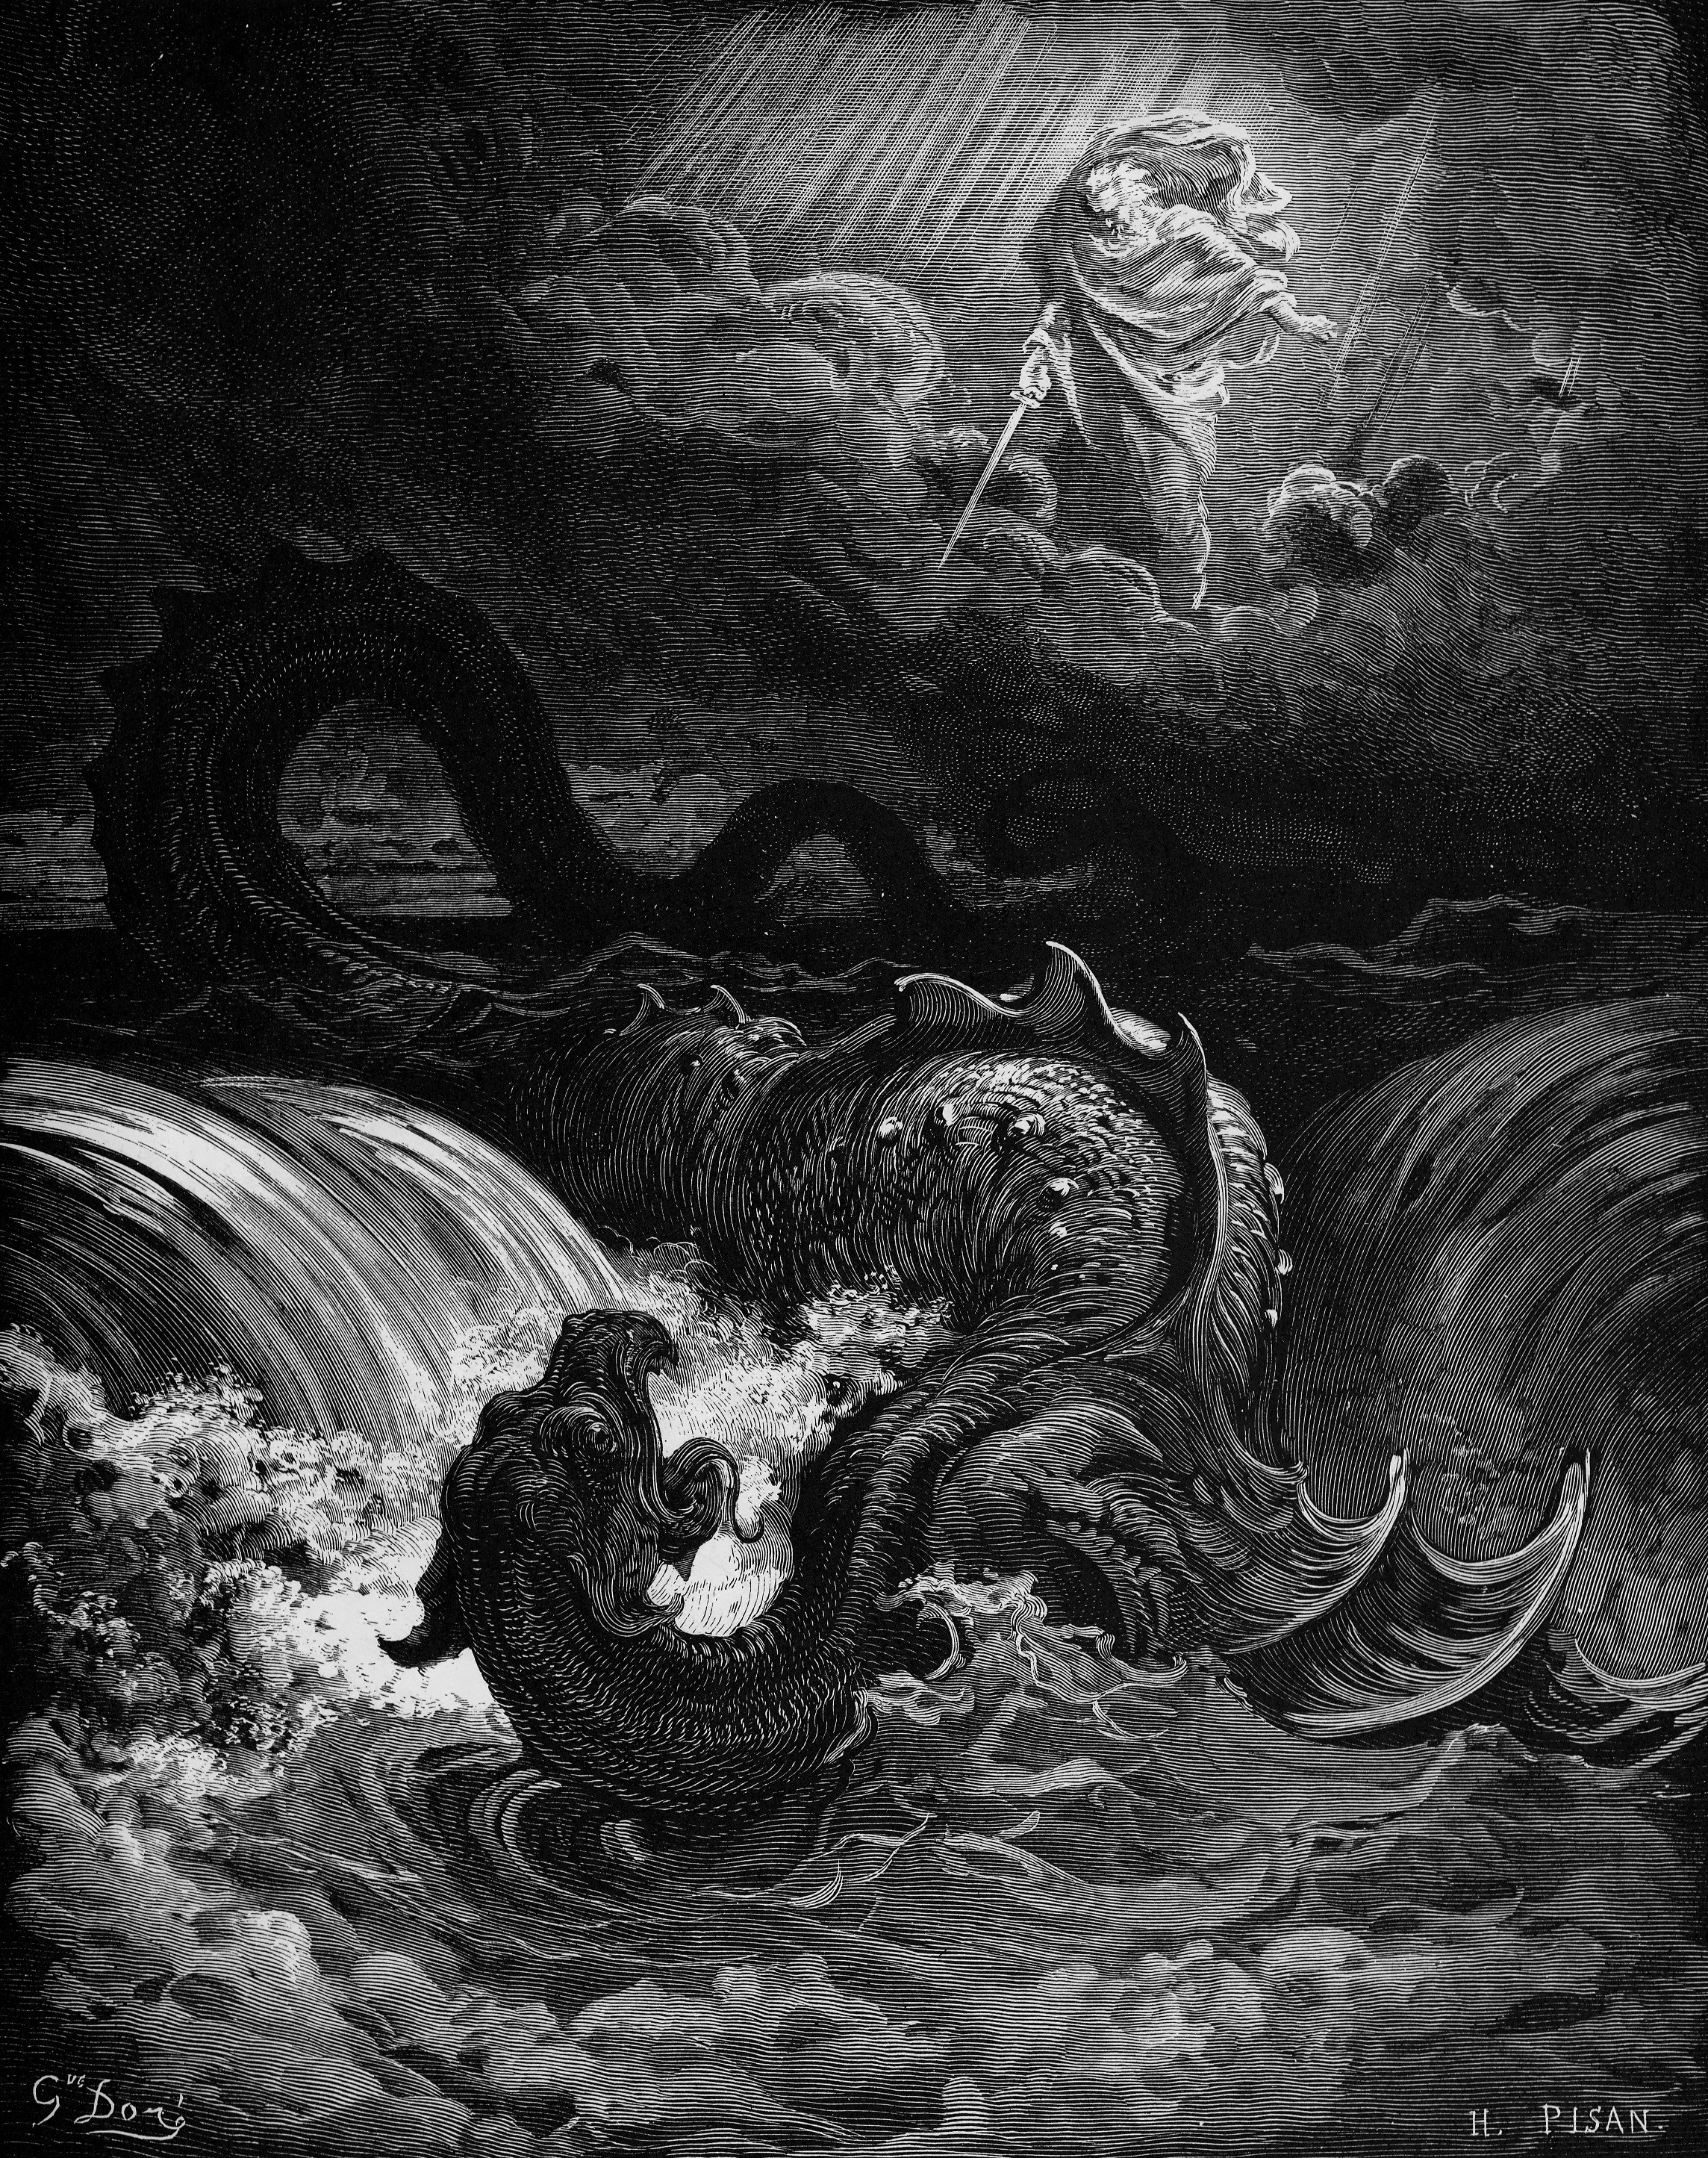 https://upload.wikimedia.org/wikipedia/commons/9/9d/Destruction_of_Leviathan.png